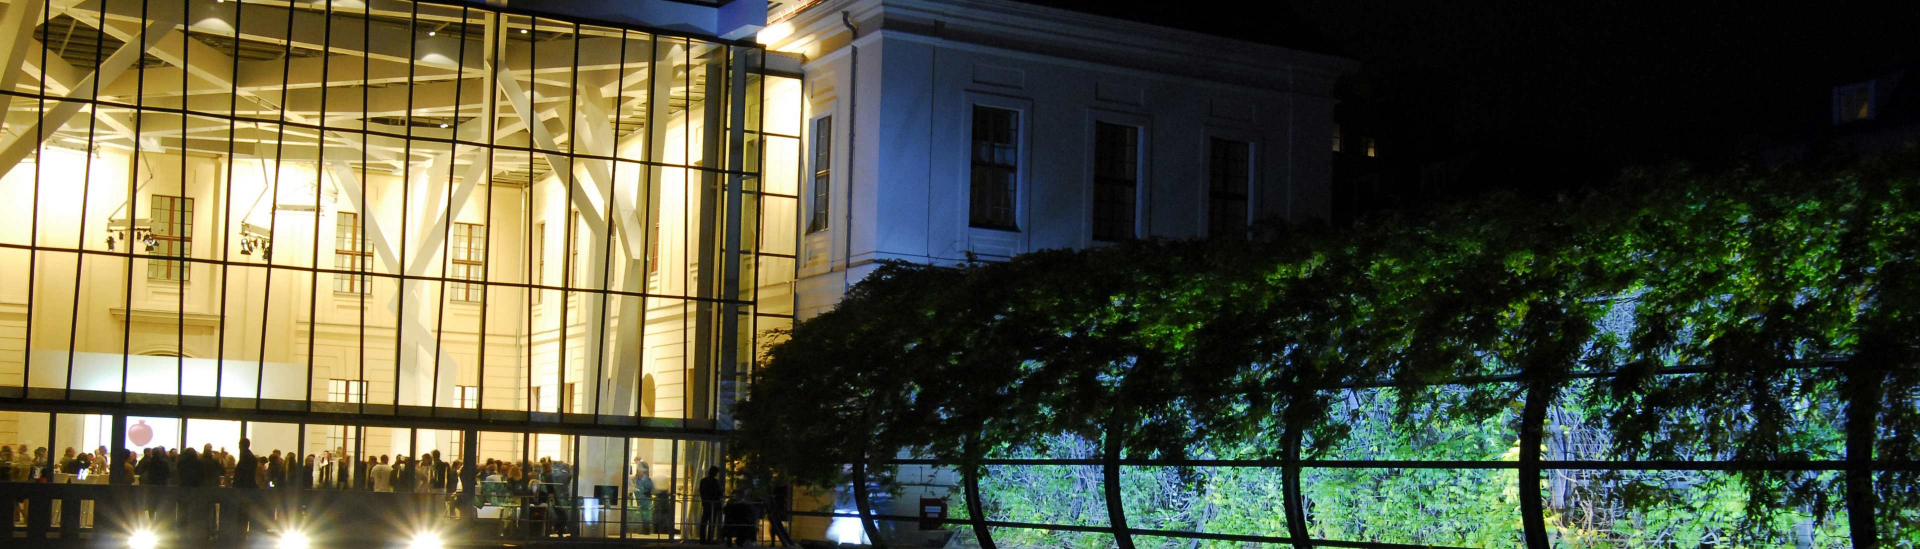 People at an event in the glass courtyard, view from the garden at night